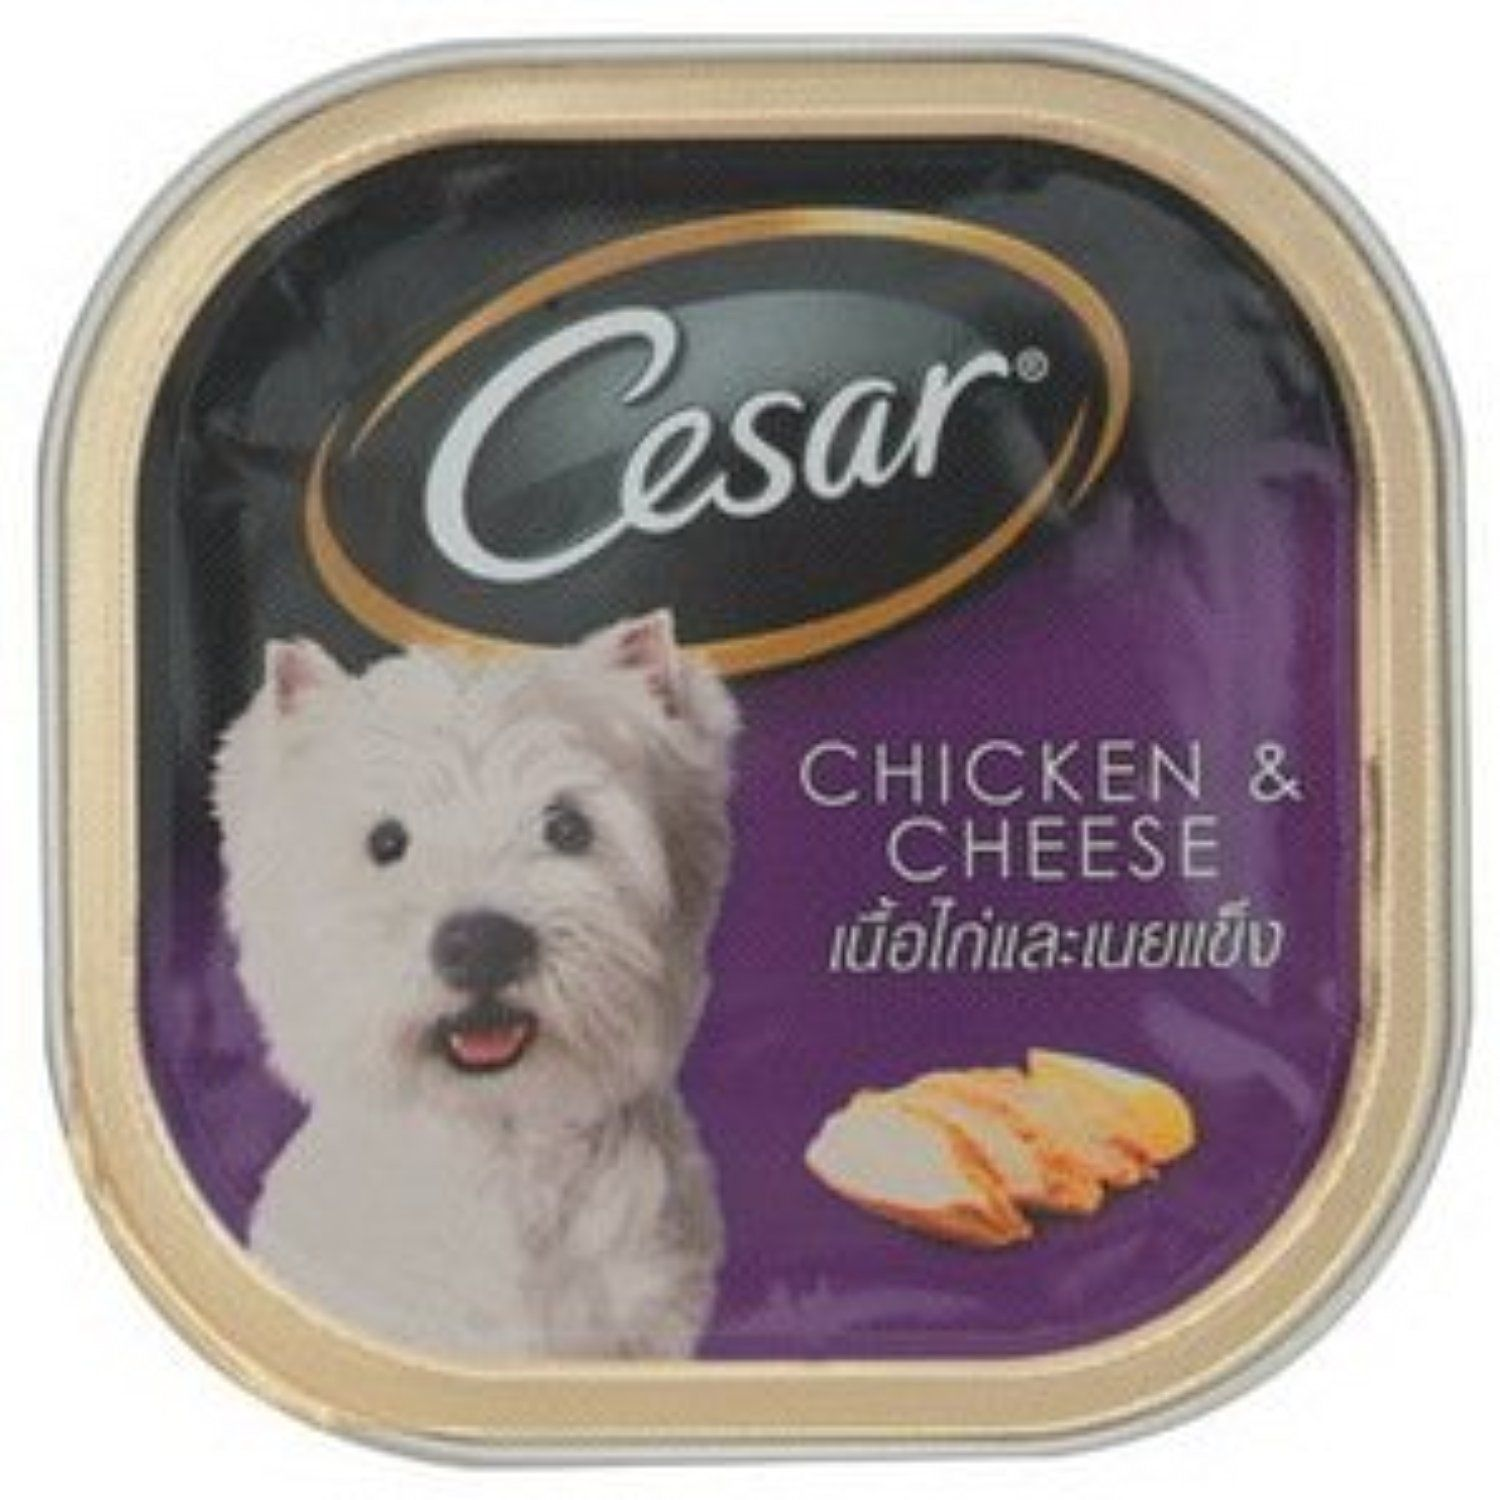 10x Cesar Chicken And Cheese 100g Dog Food New Made From Thailand